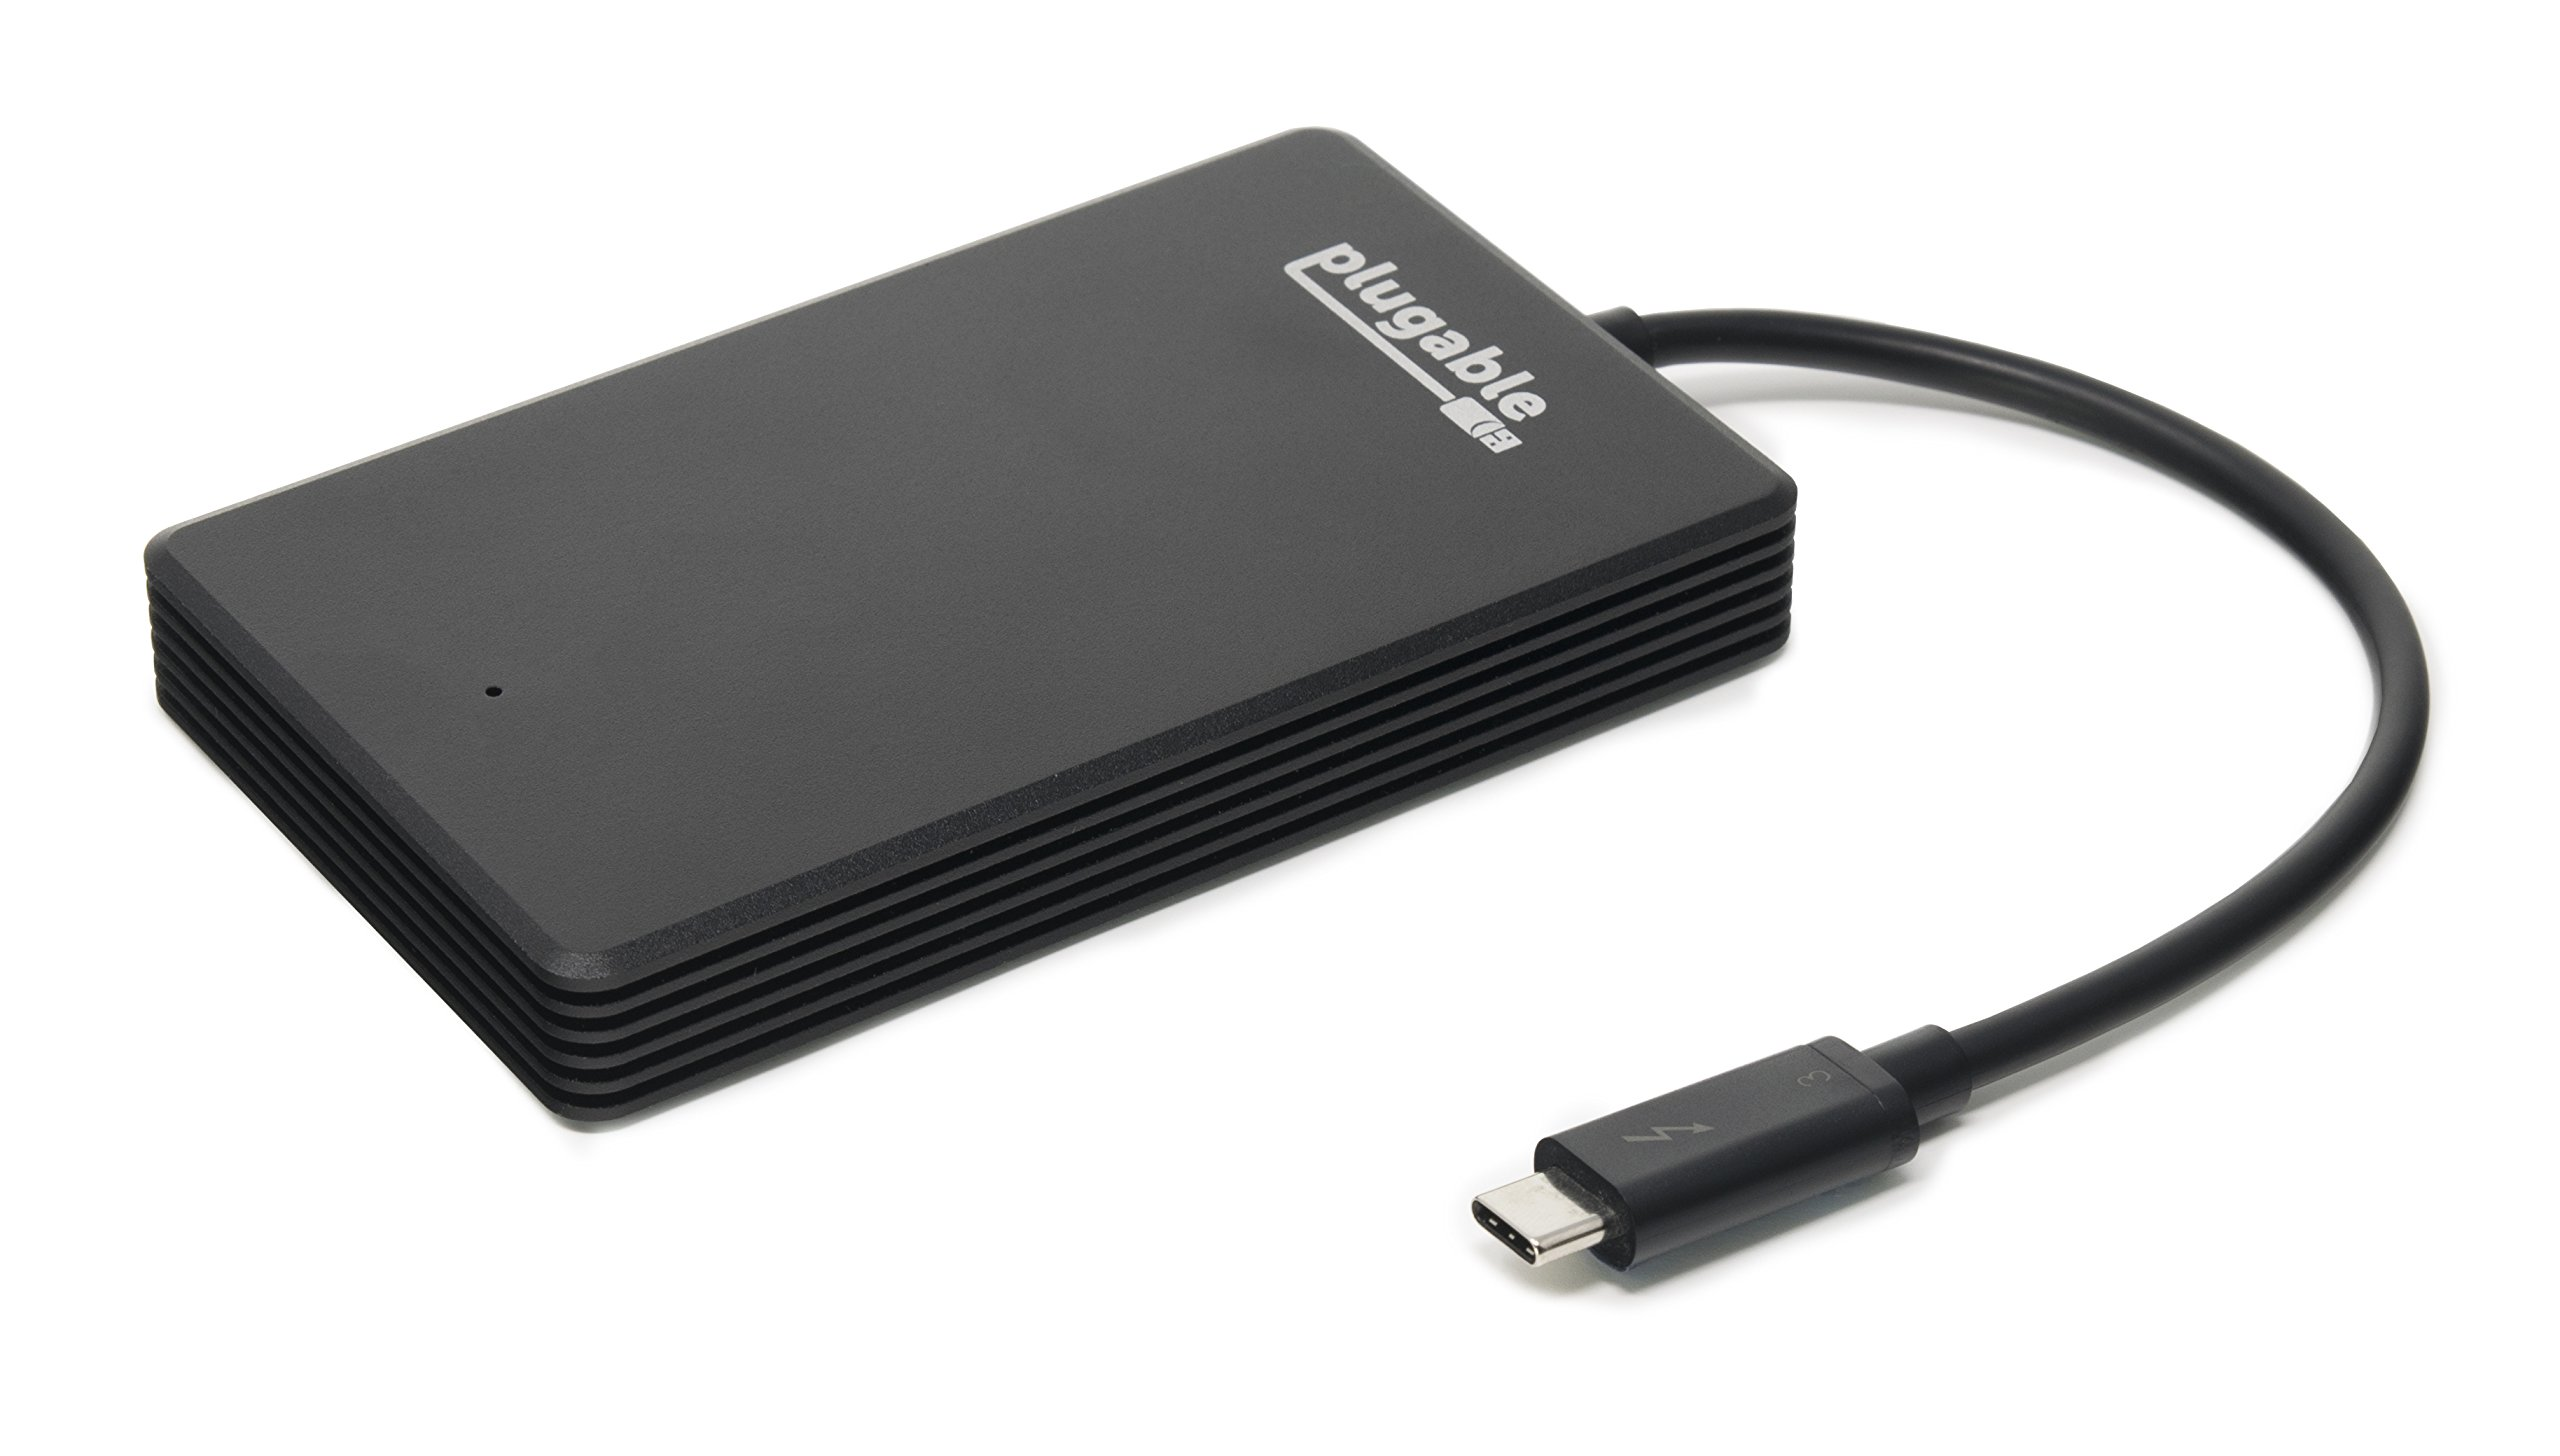 Plugable Thunderbolt 3 480GB NVMe SSD (Up to 2400MB/s+ Read, 1200MB/s+ Write)